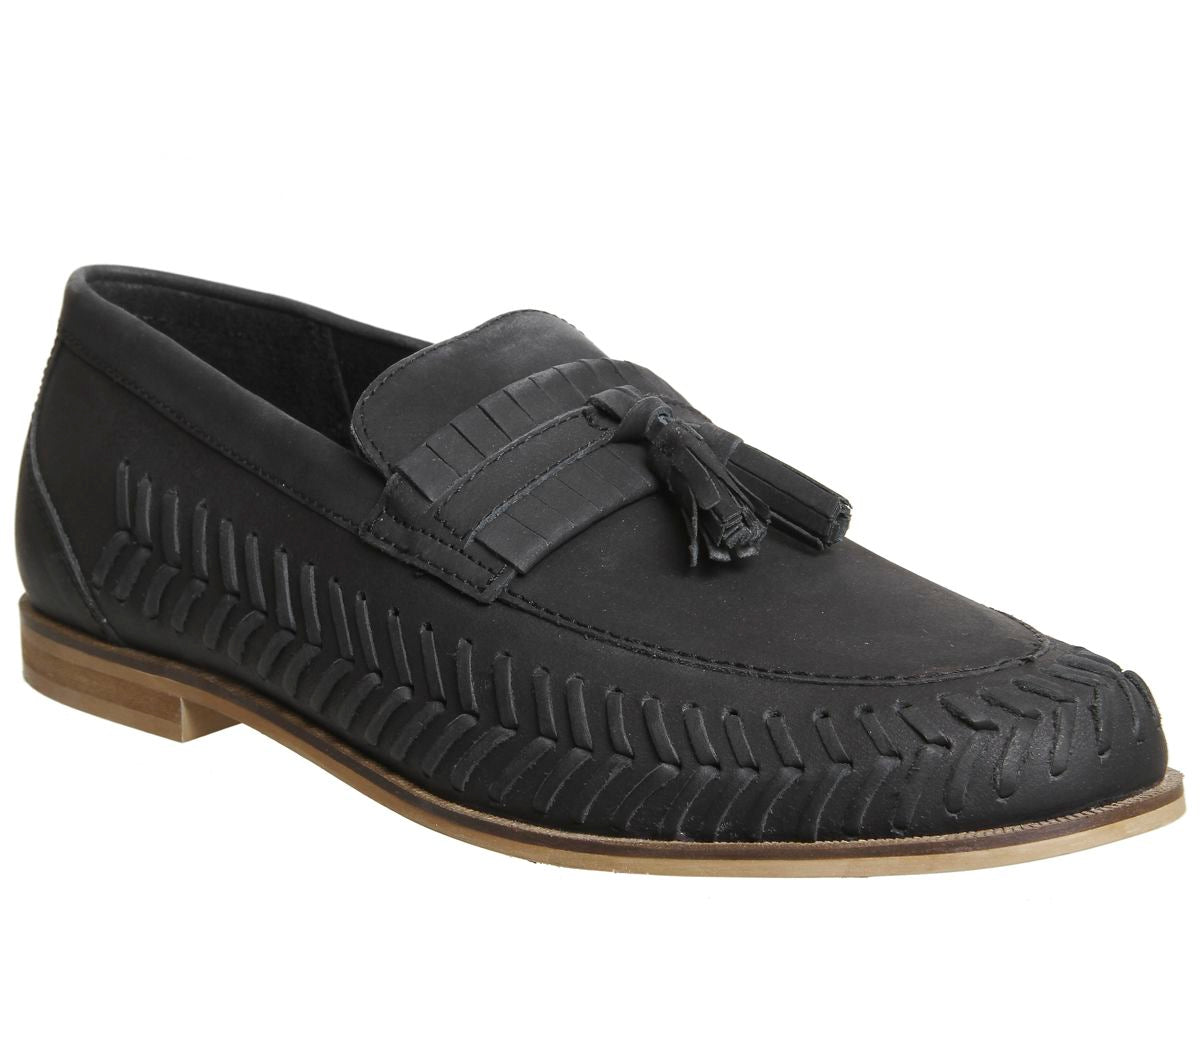 Mens Office Hoxton Woven Loafers Black Washed Leather